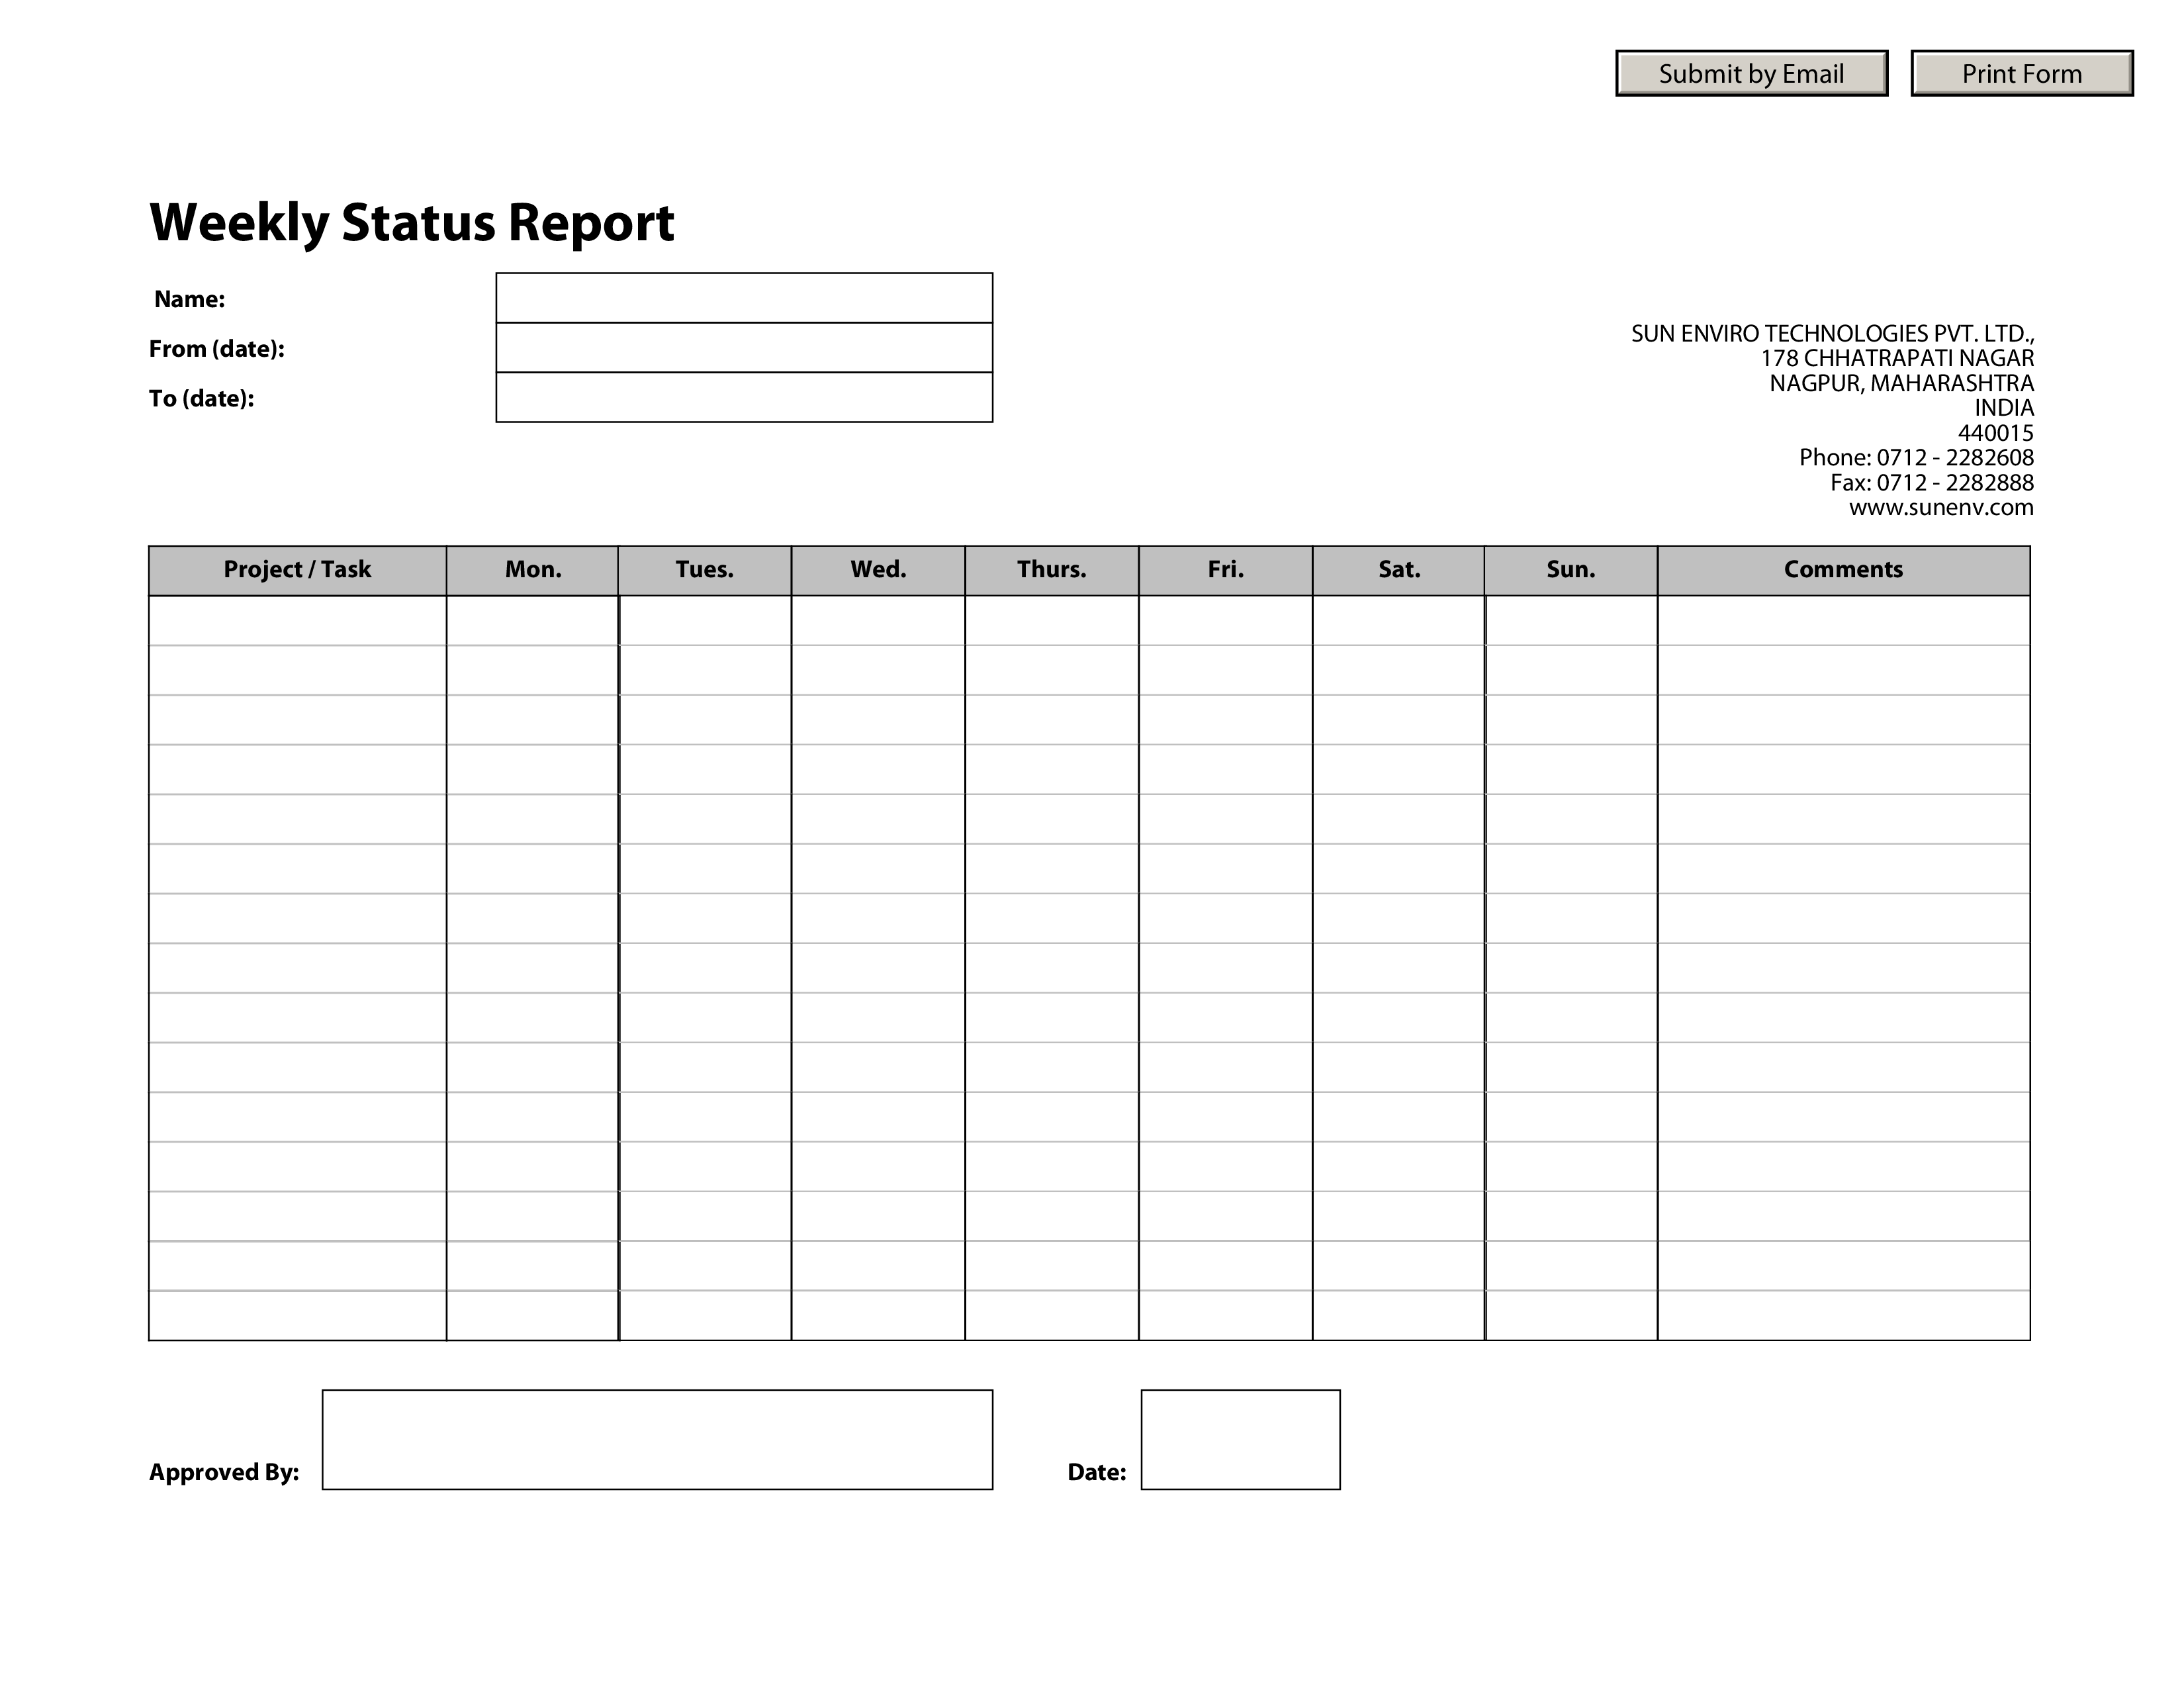 Hr Weekly Status Report  Download This Hr Weekly Status Report